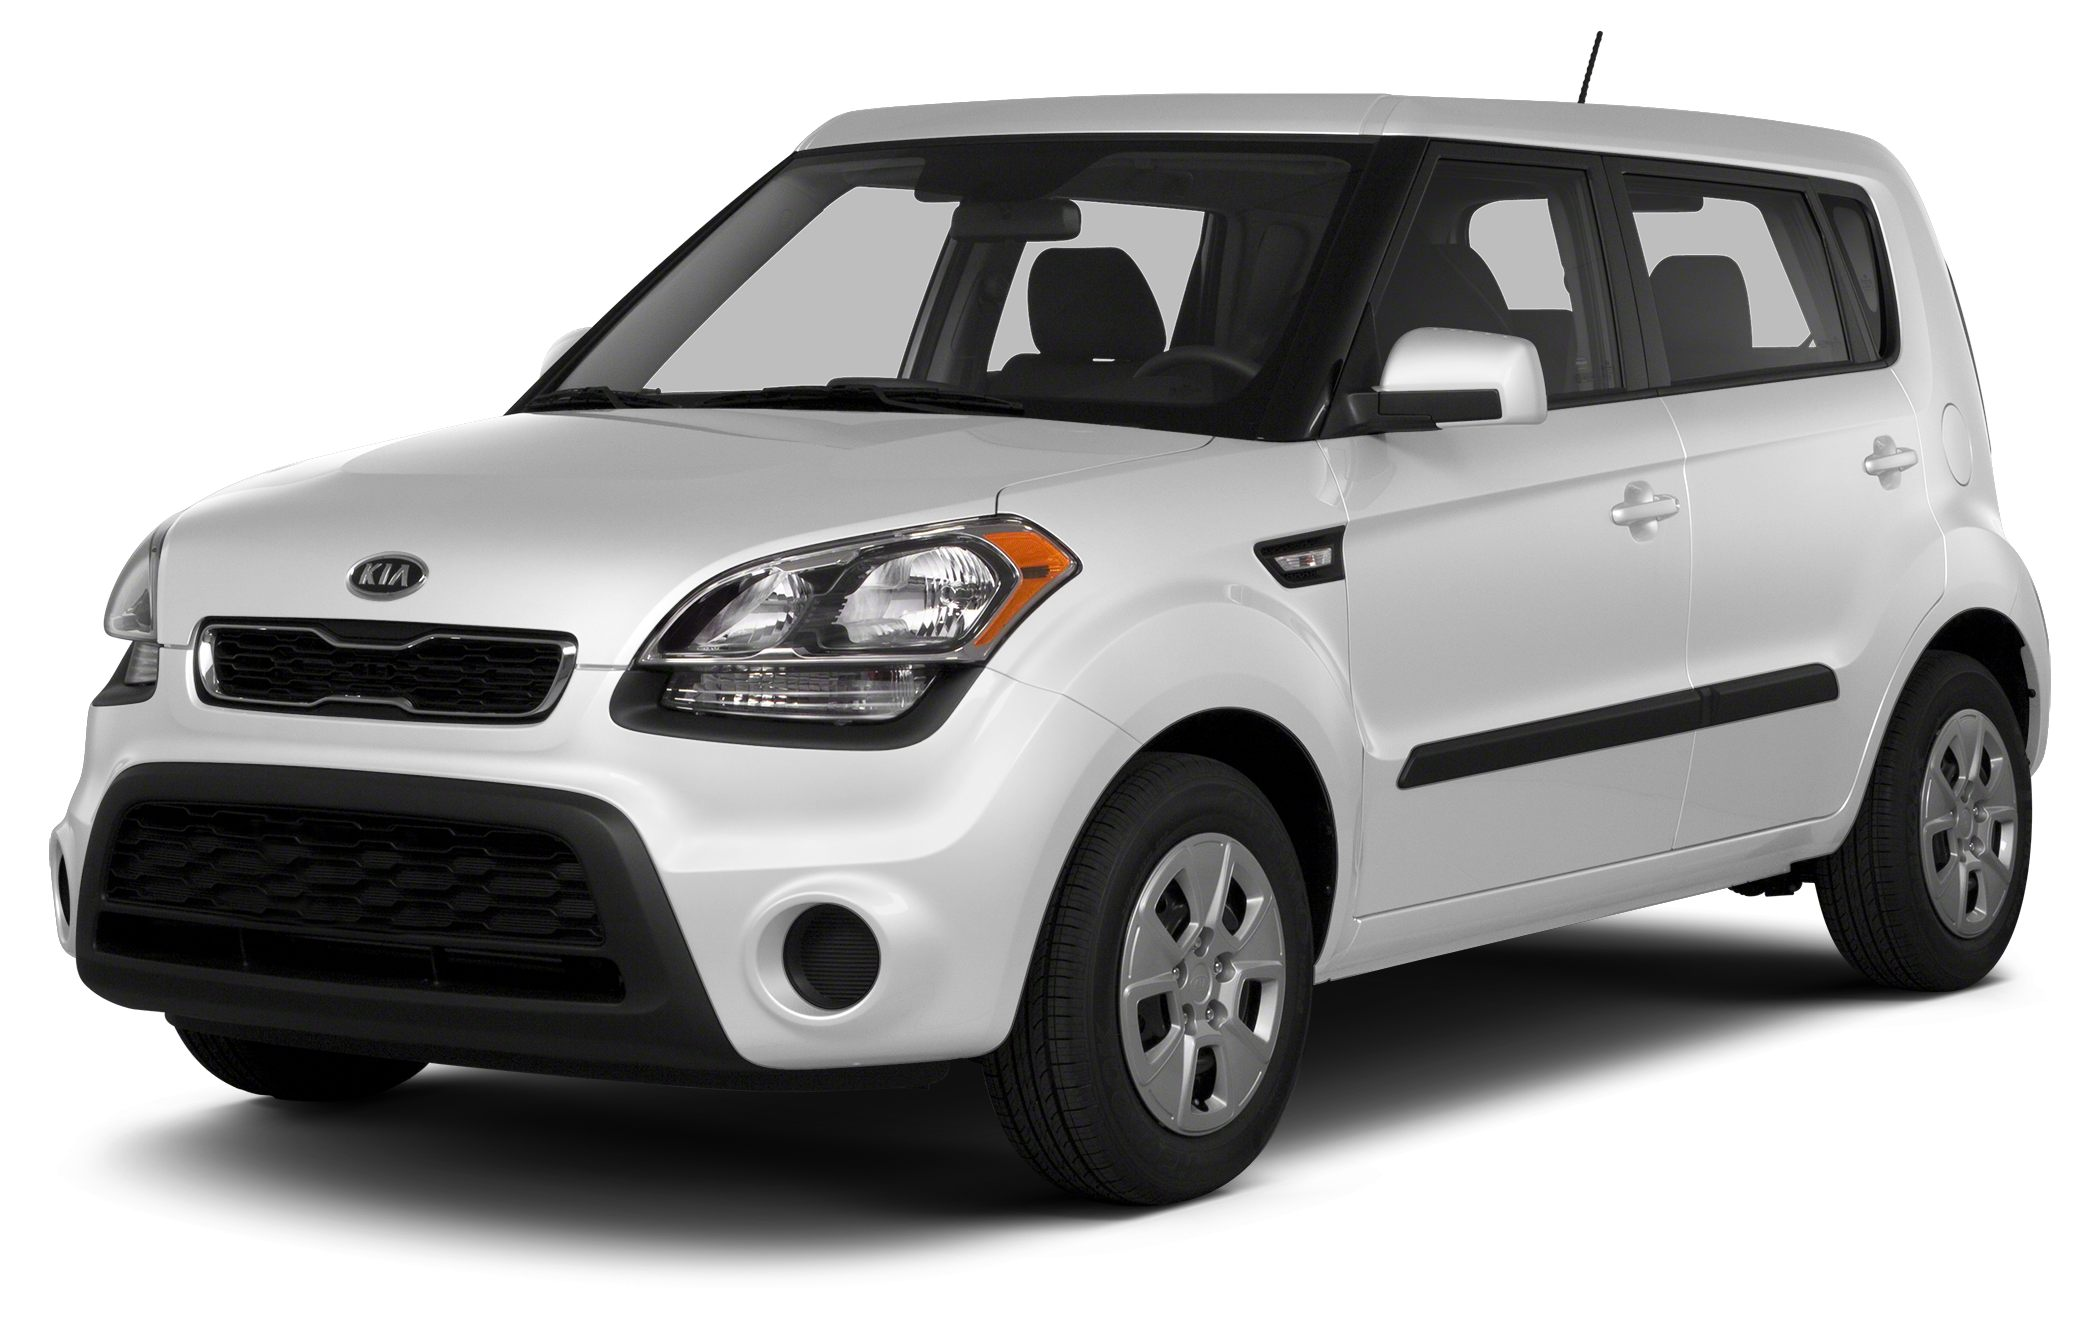 2013 Kia Soul HATCHBACKAUTO For Internet Pricing and InformationPlease call Teresa Brown  866-38